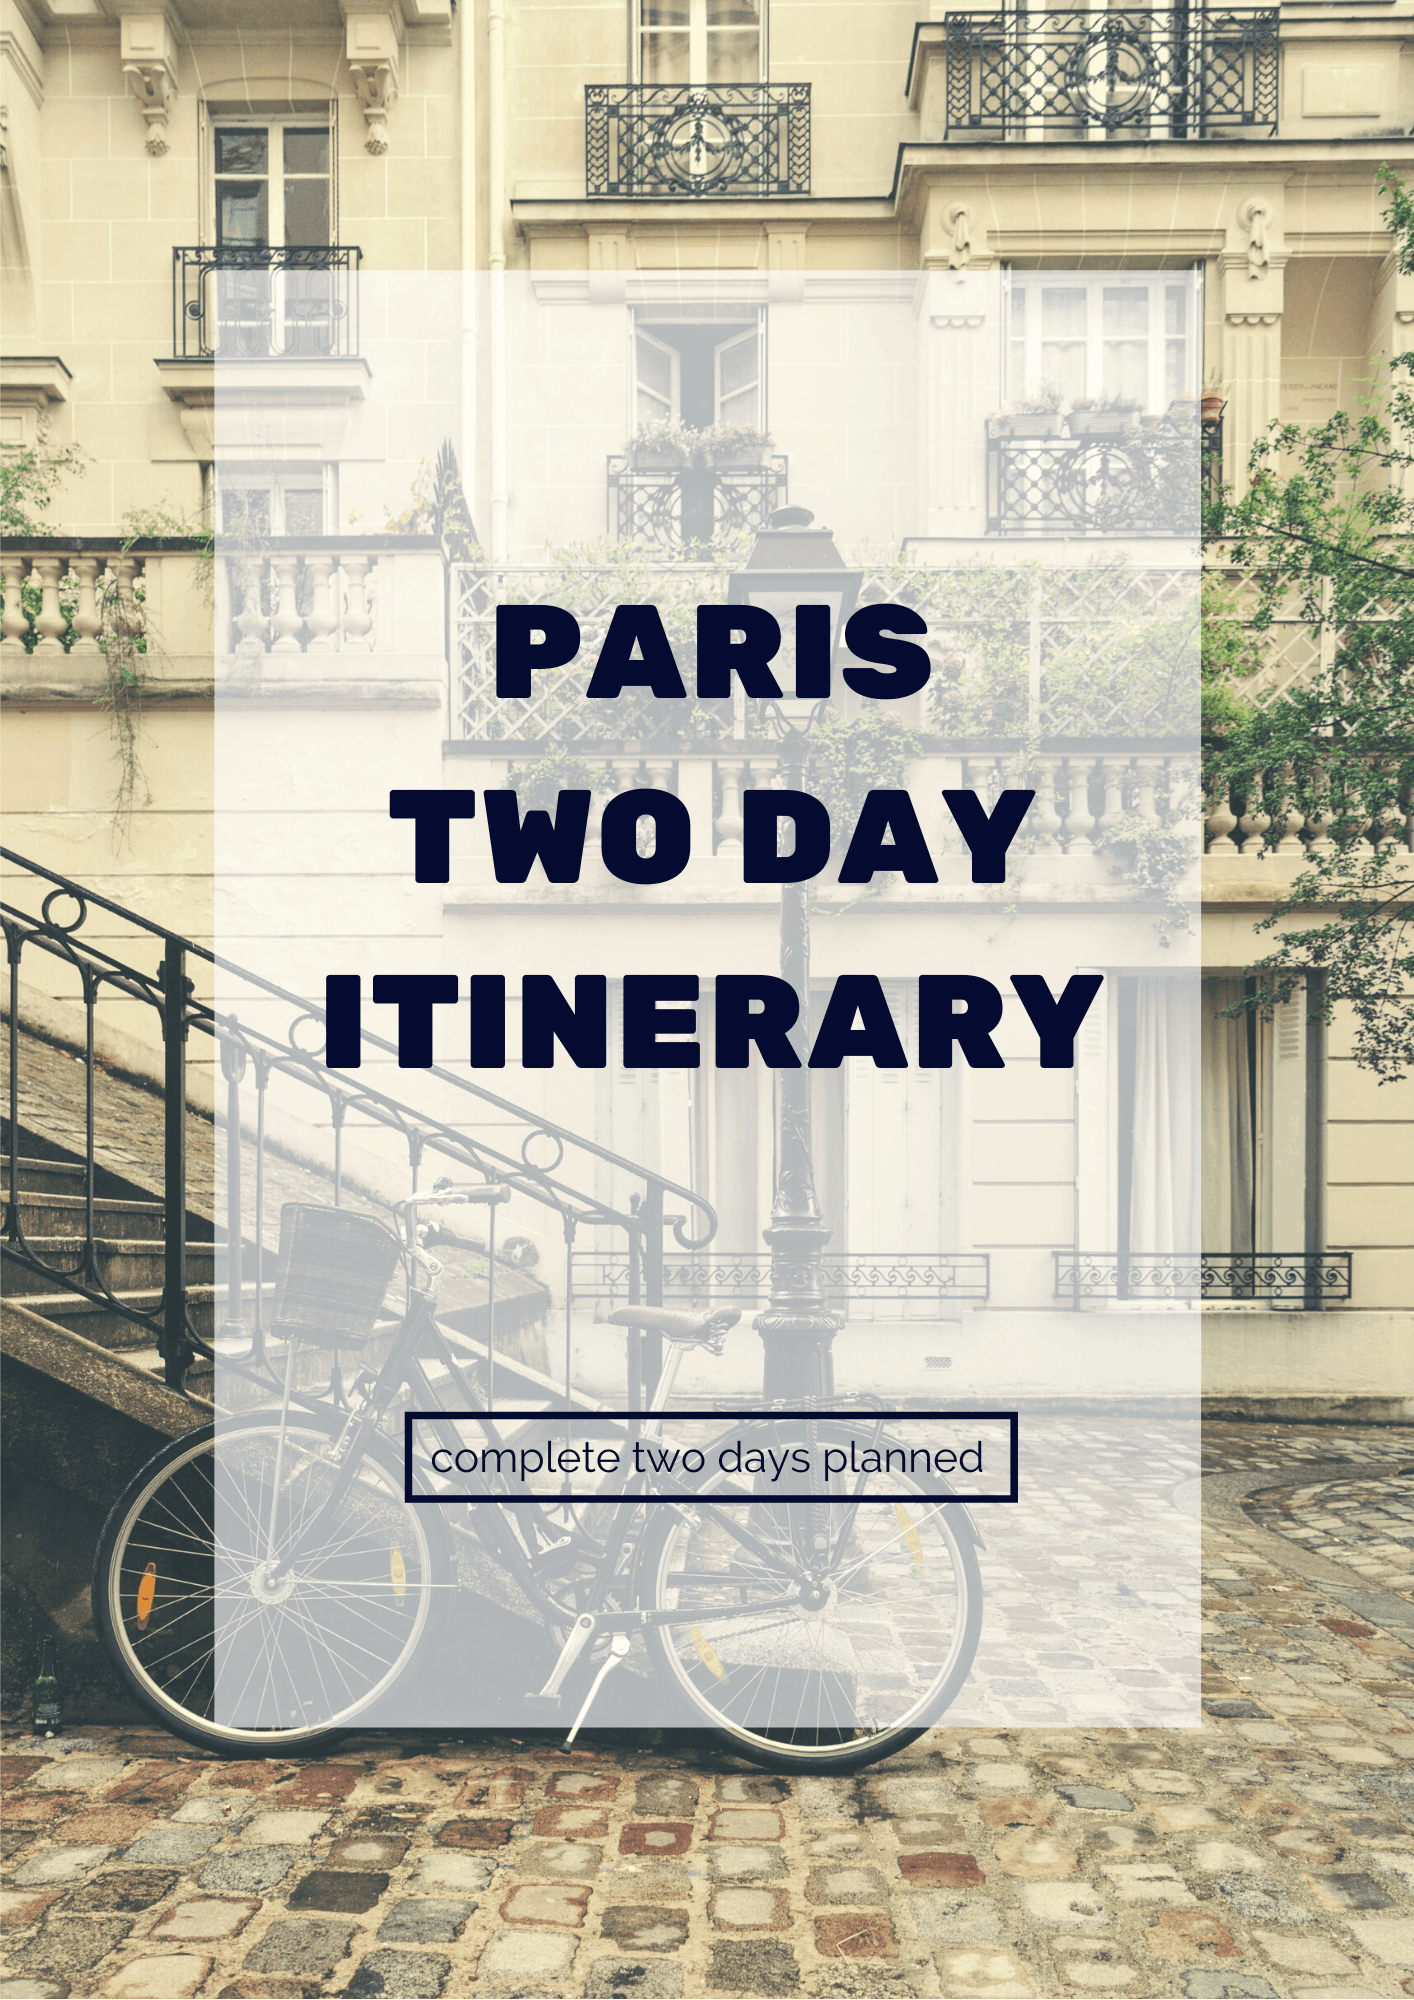 Paris Two Day Itinerary 2019